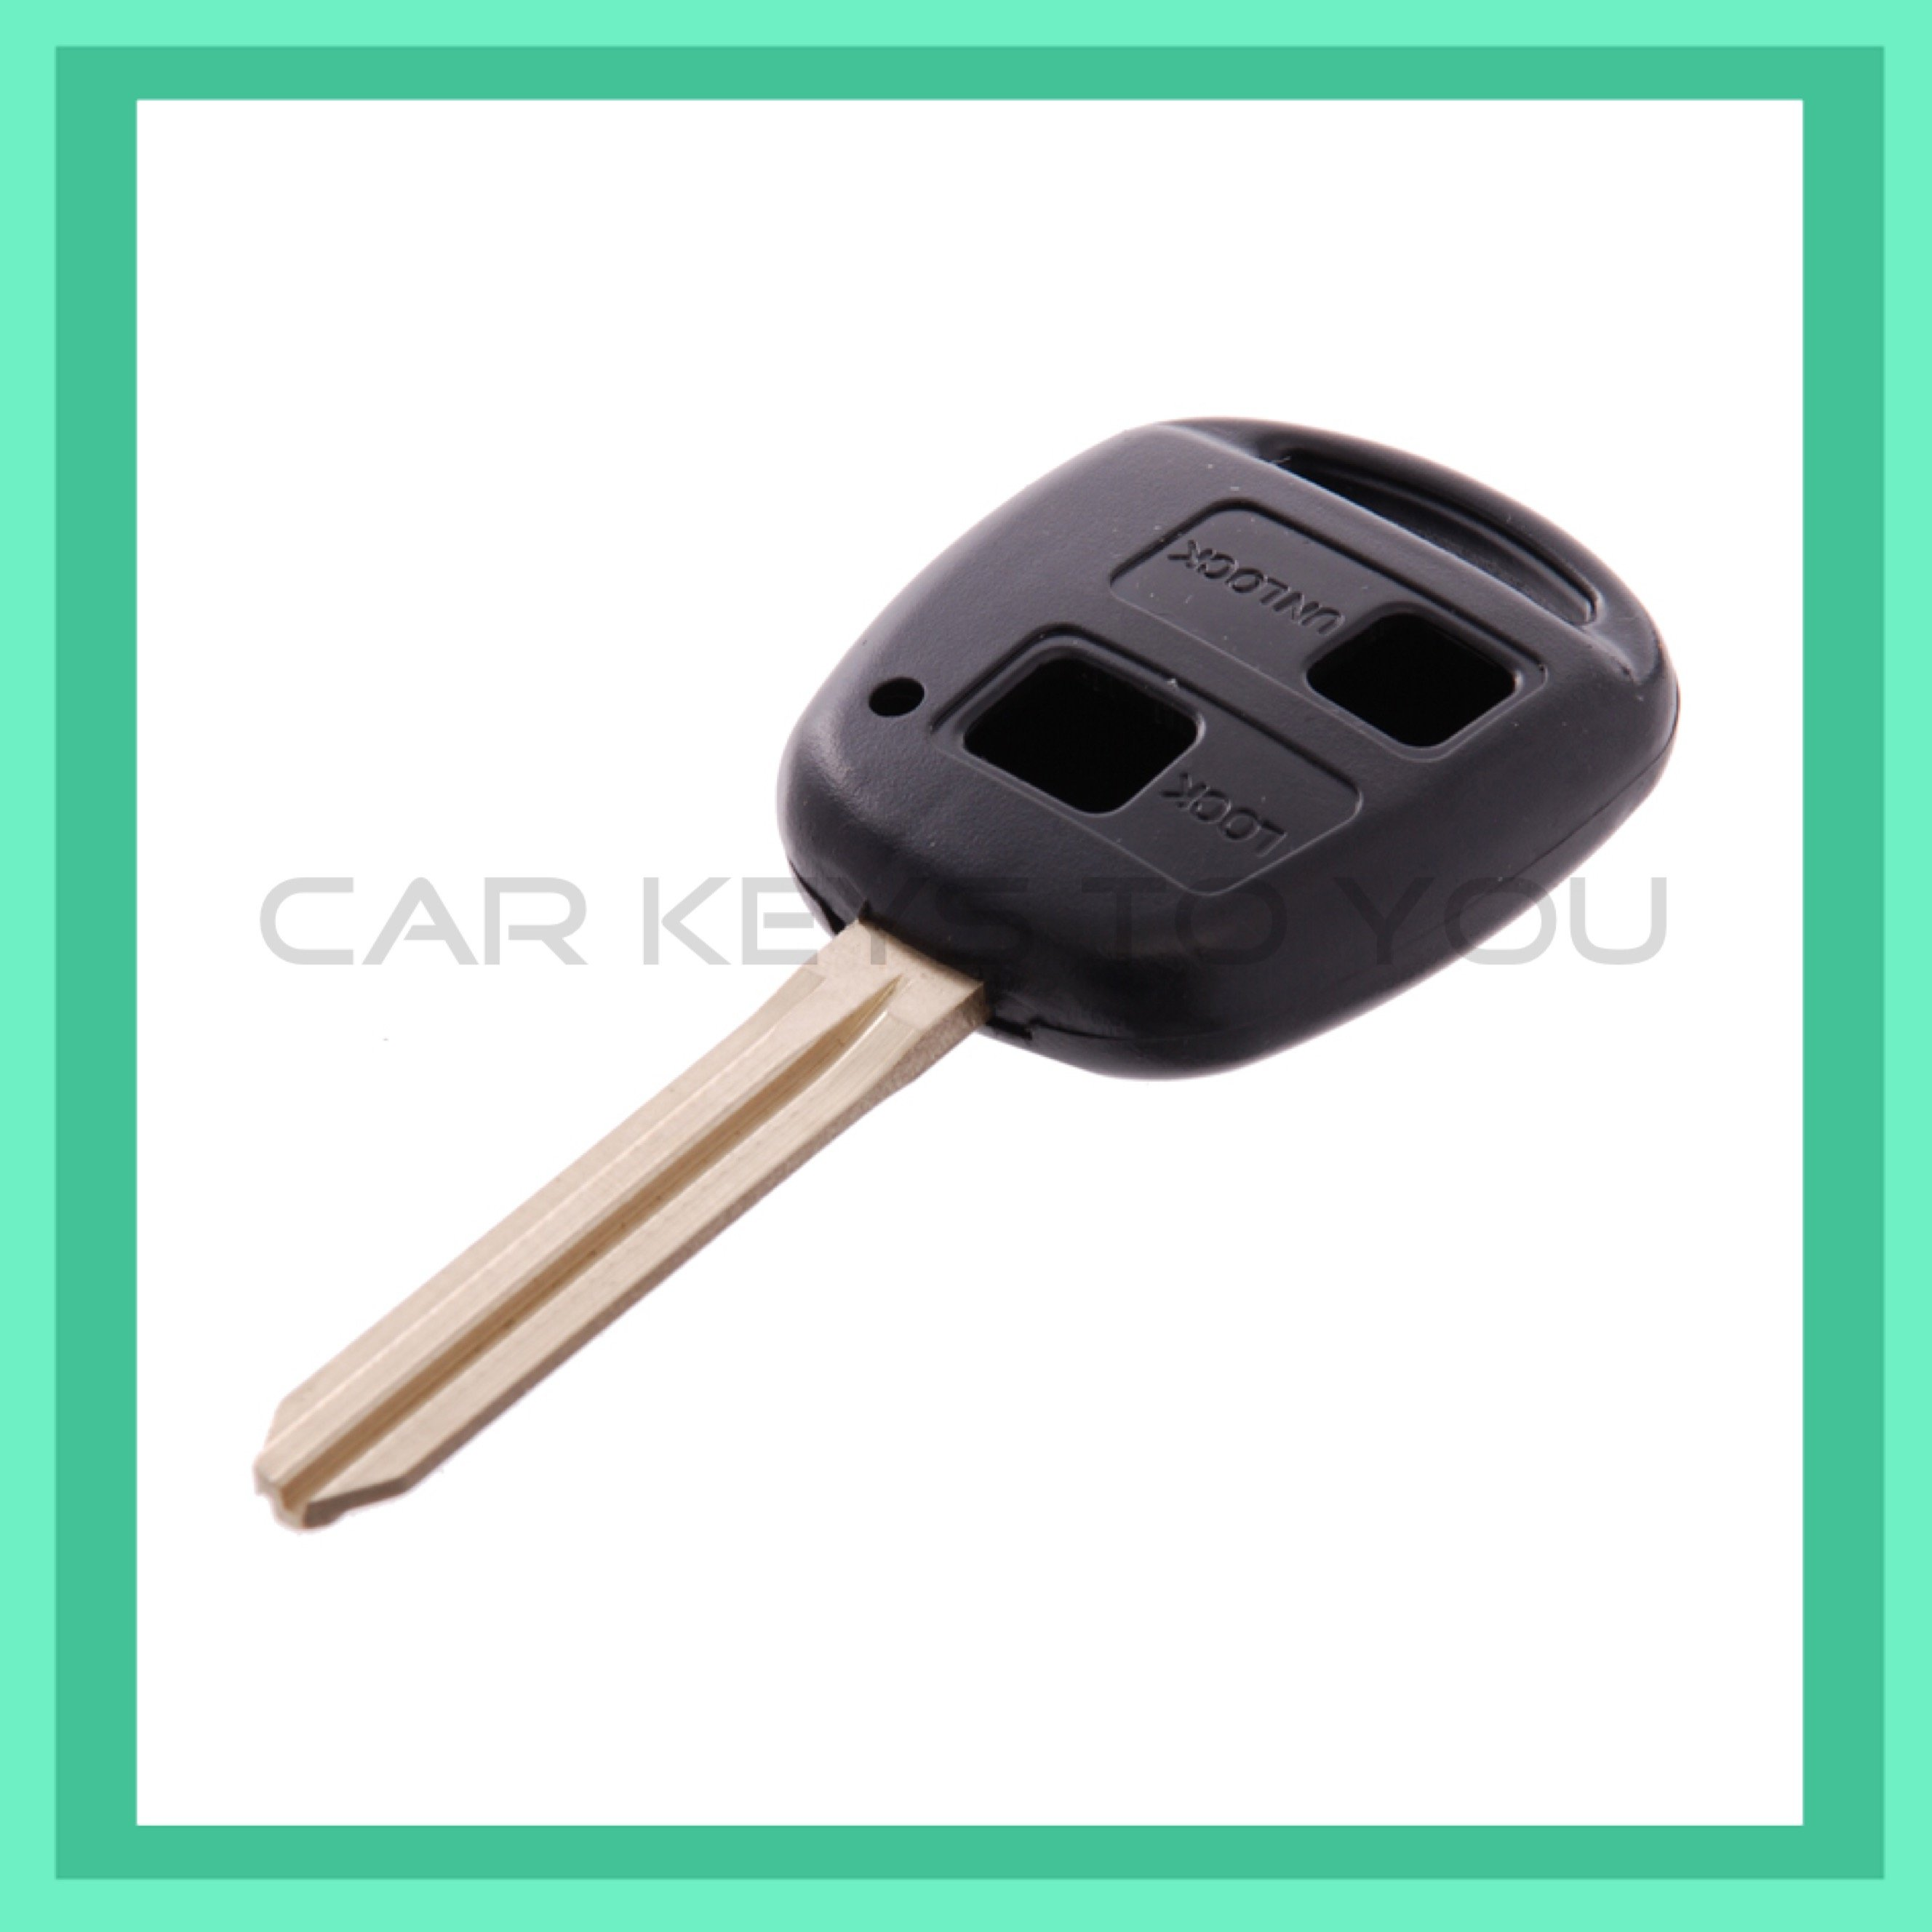 Great Wall Car Key and Remote, Suit SA220 2009-2010